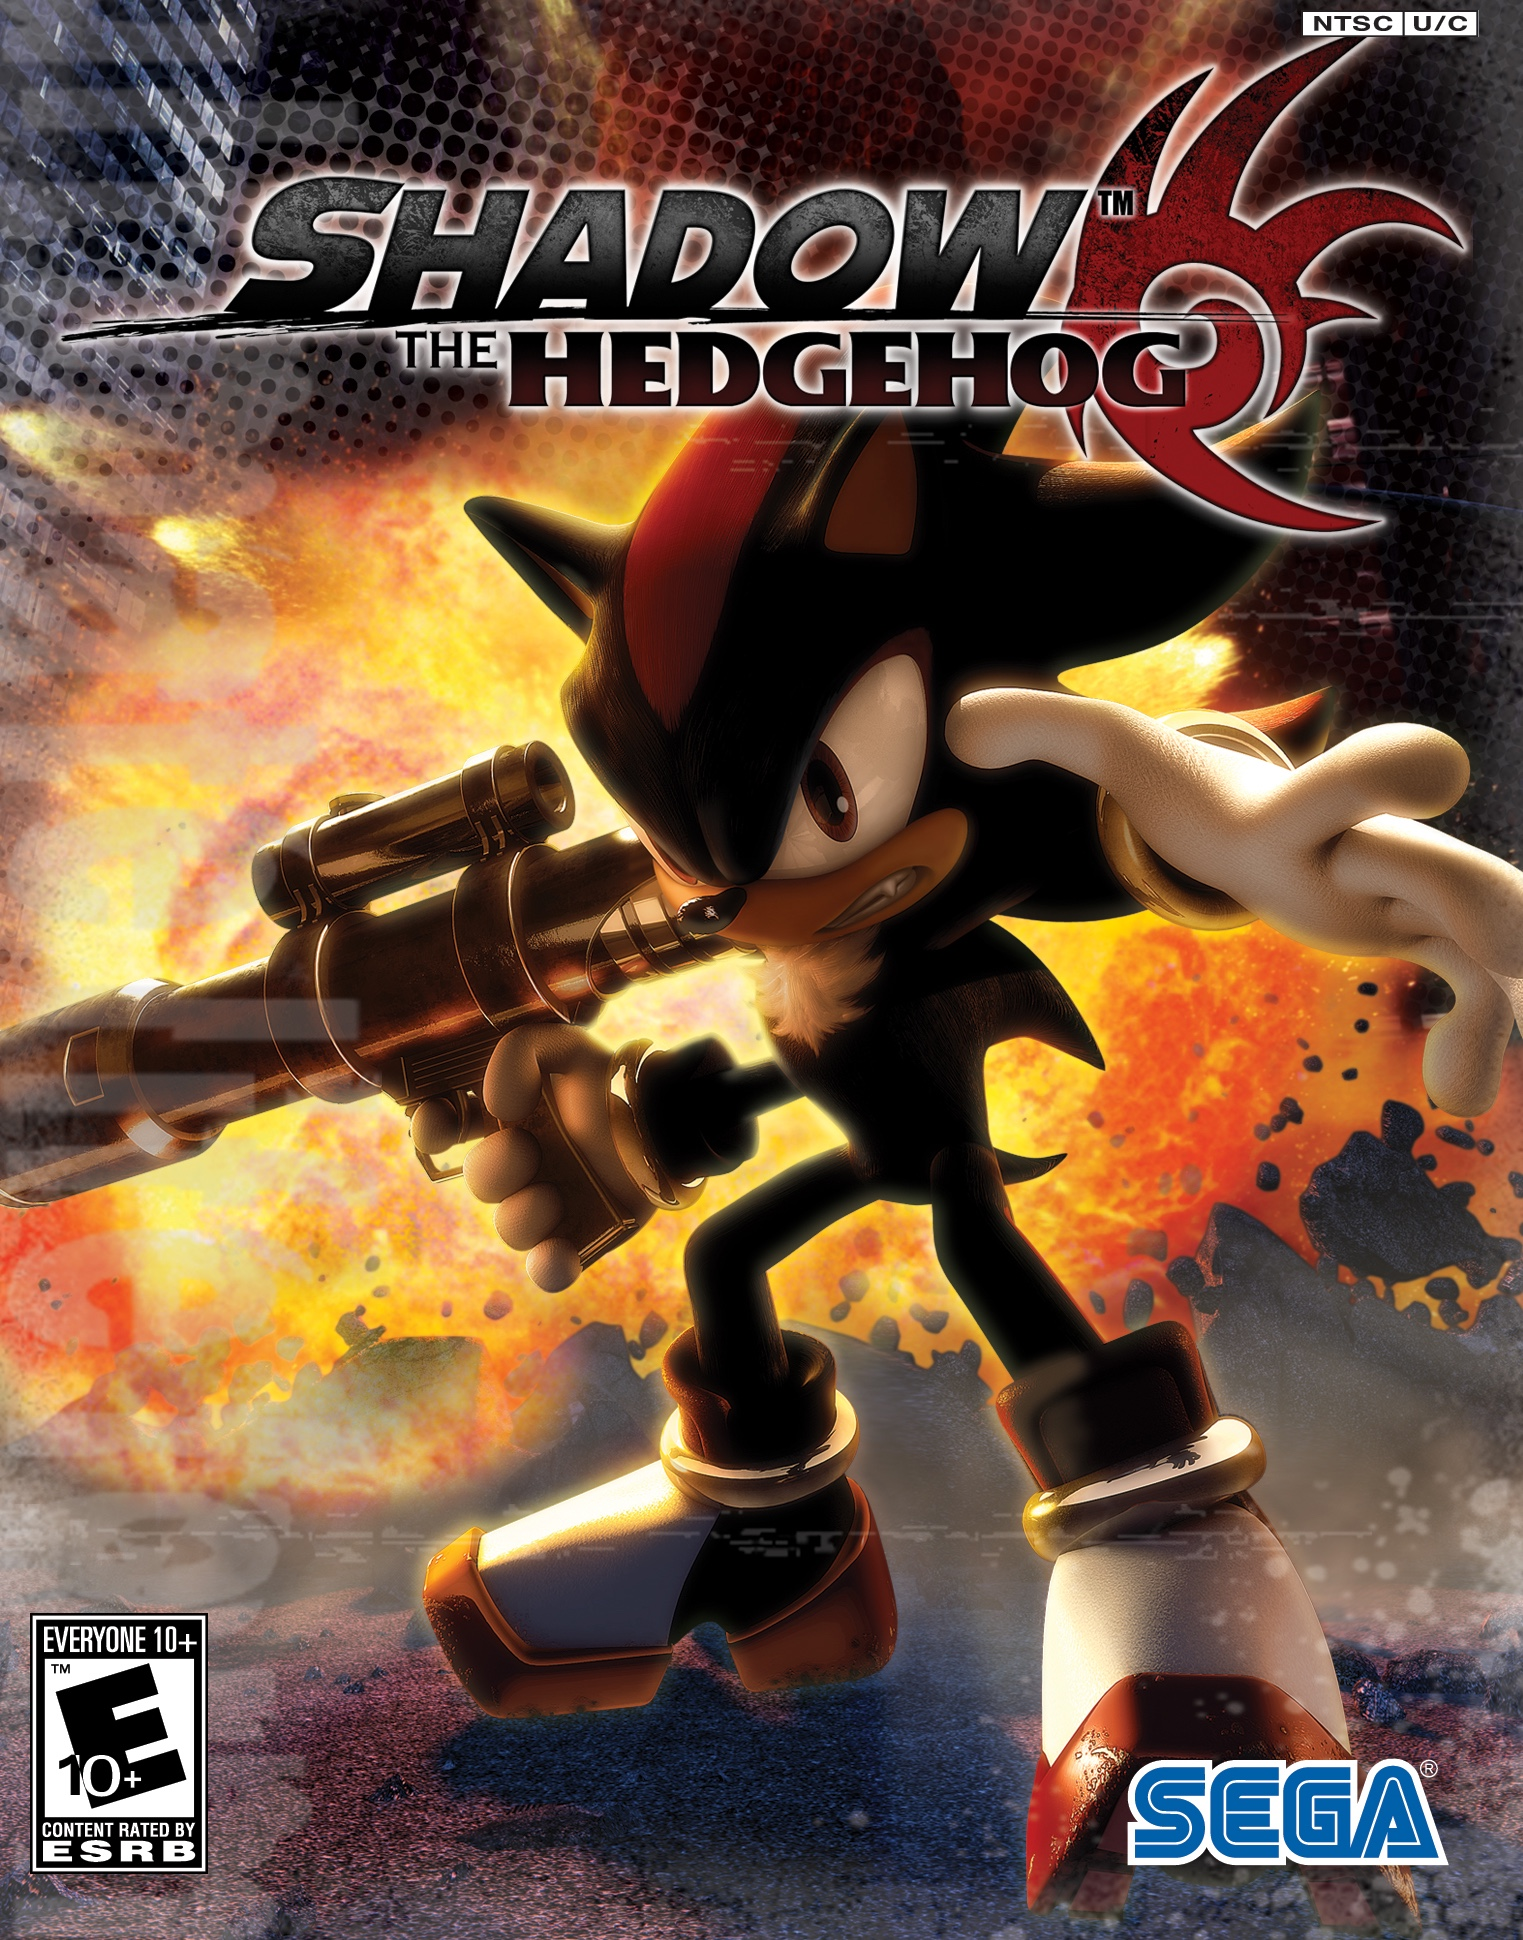 Image result for shadow the hedgehog cover